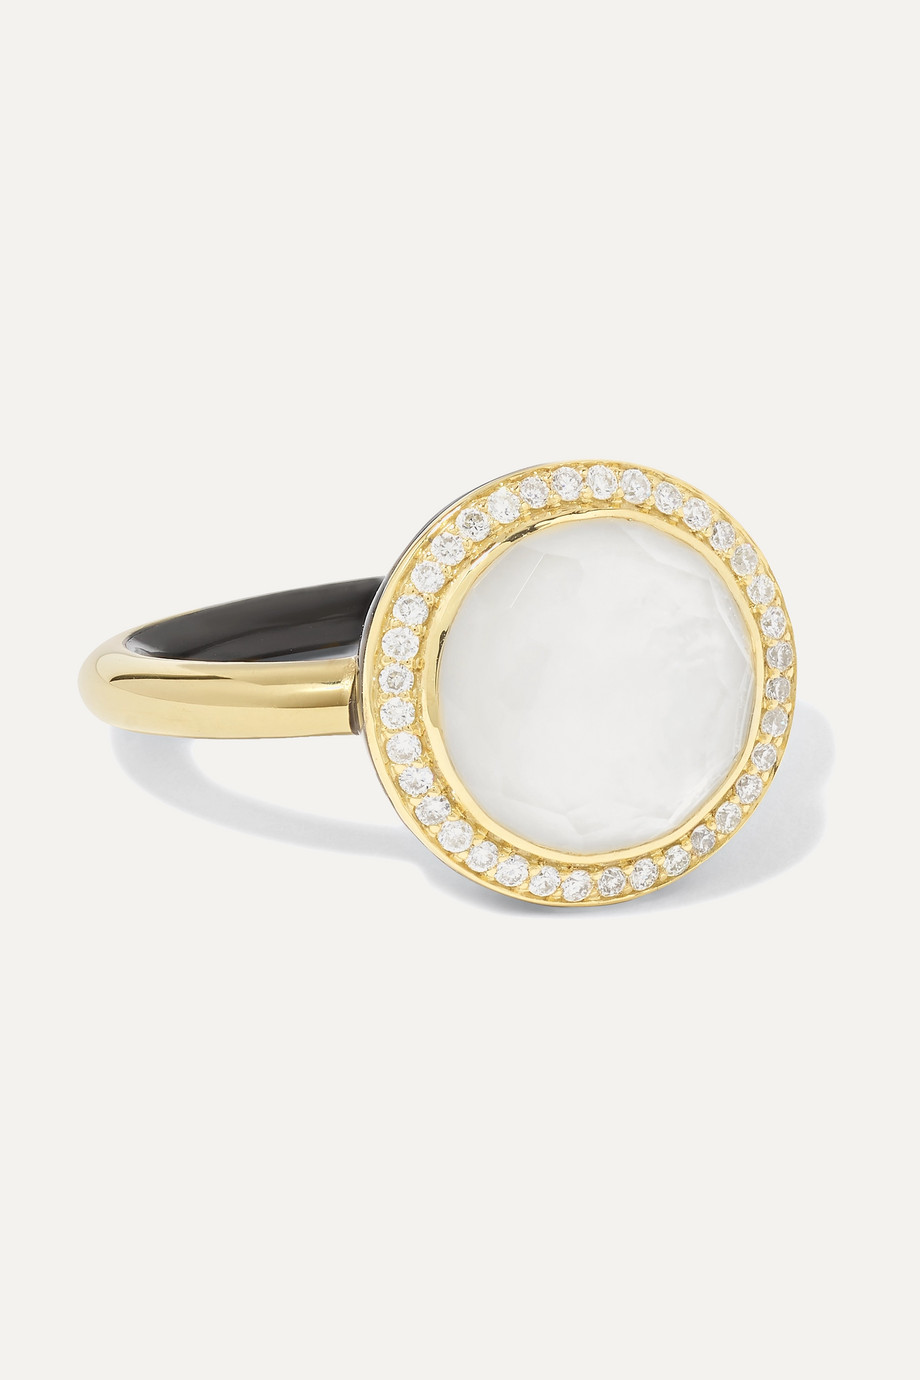 Ippolita Lollipop Carnevale 18-karat gold, mother-of-pearl, diamond and ceramic ring